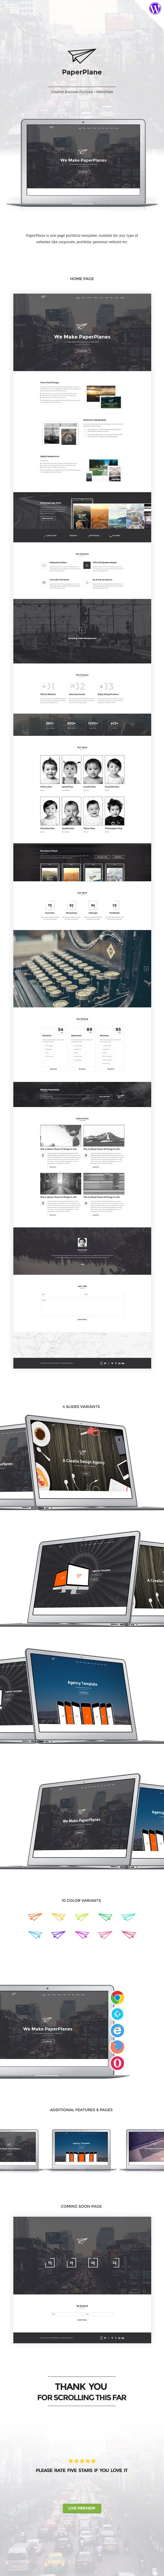 PaperPlane is one page portfolio WordPress theme, suitable for any type of websites like business, portfolio, personal website etc. It is fully compatible with WordPress 4.1. It comes with famous v...